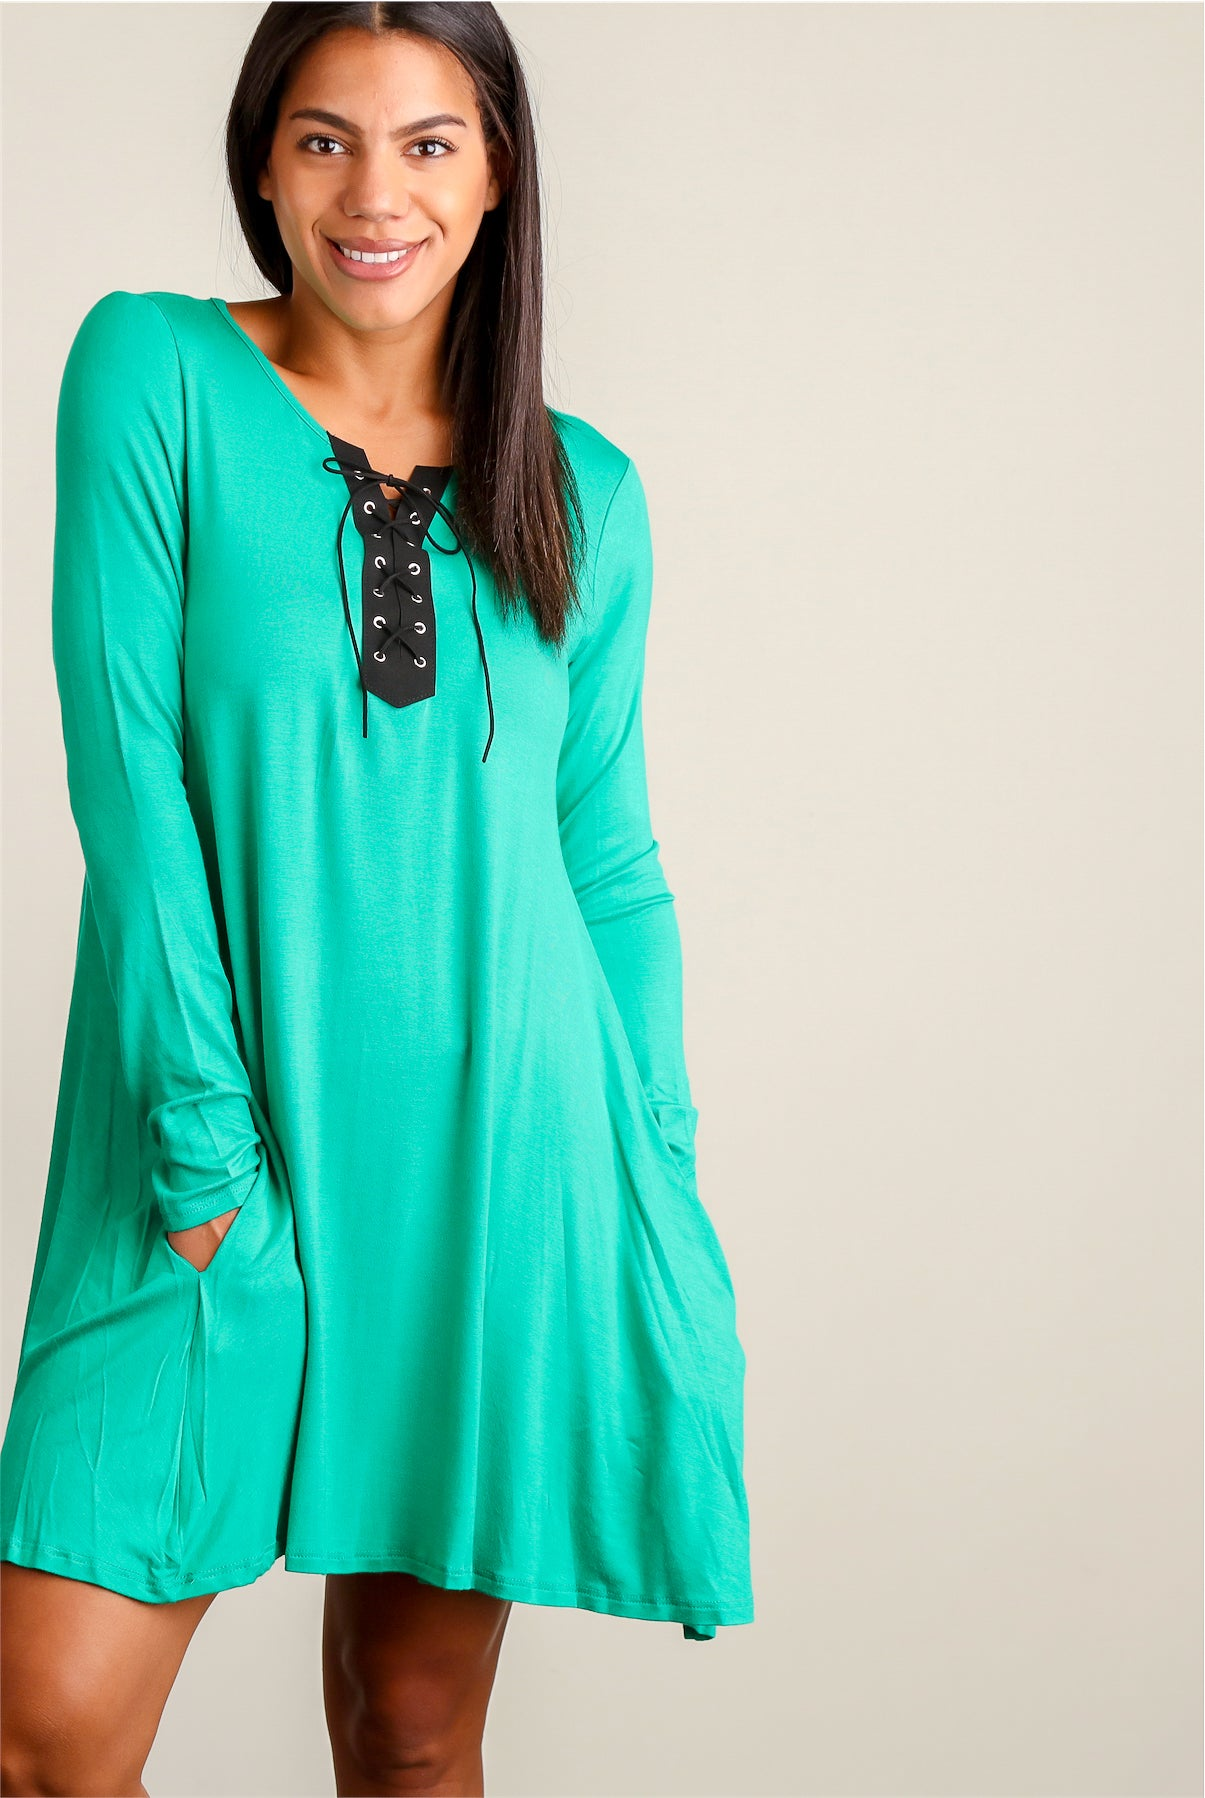 Kelly Green Panel Design Pocketed Dress